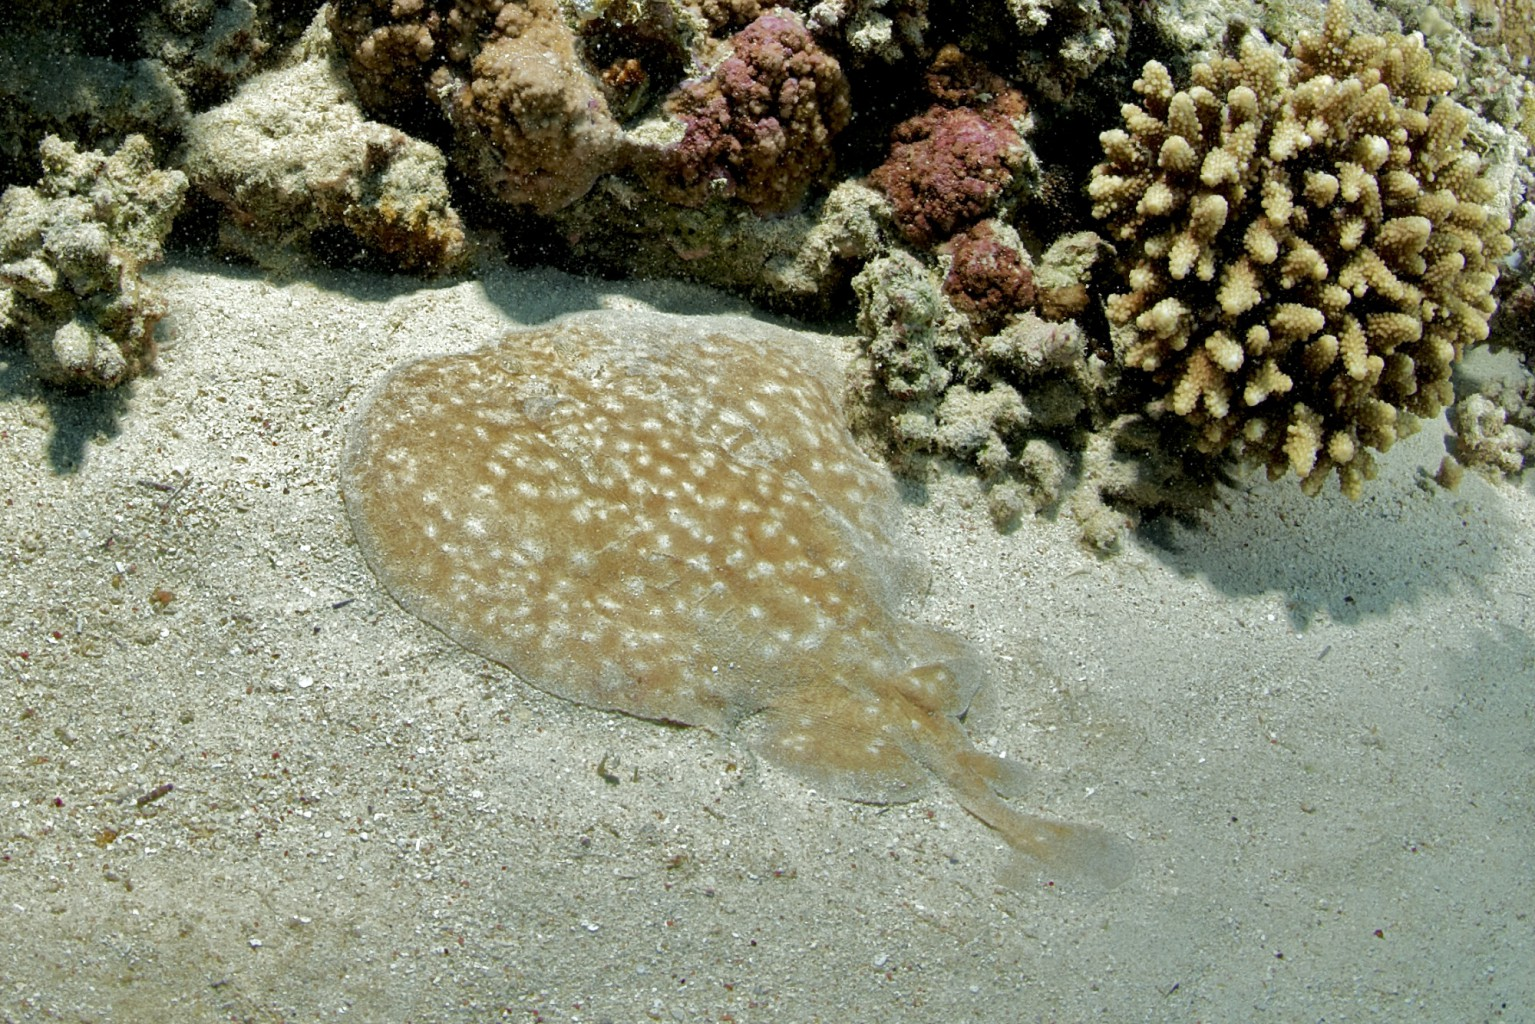 Electric Ray, southern Red Sea, Egypt